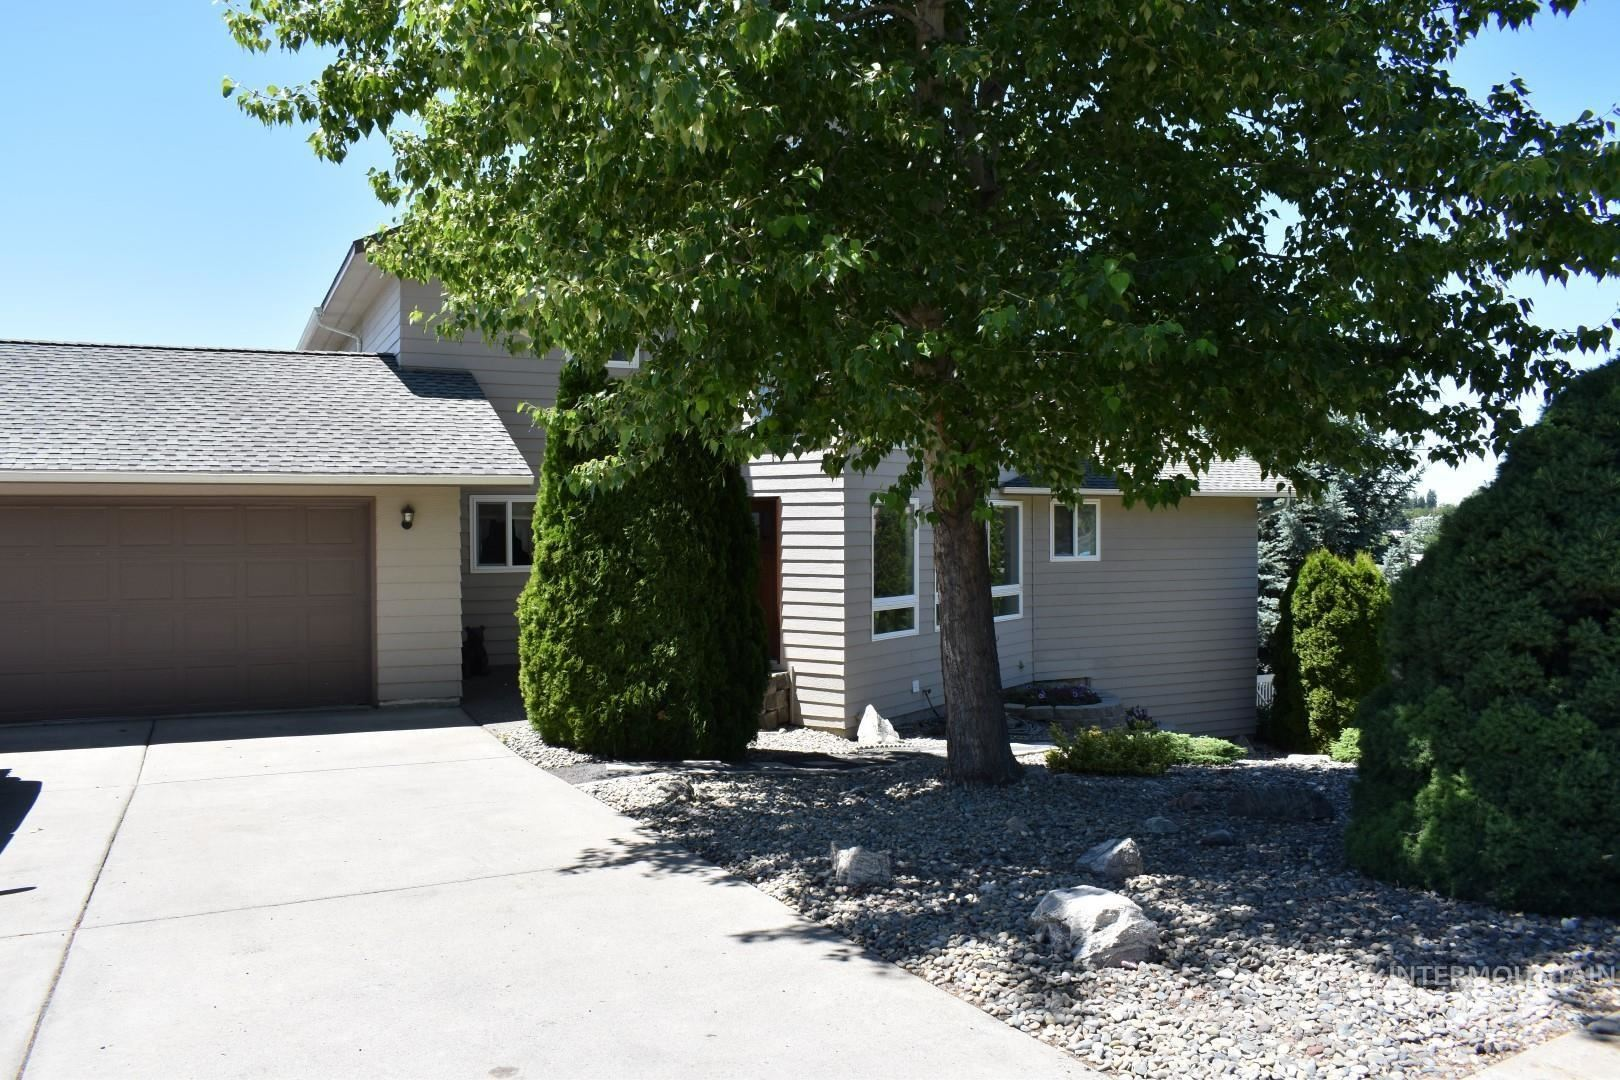 Photo of 653 Indian Hills, Moscow, ID 83843 (MLS # 98807126)